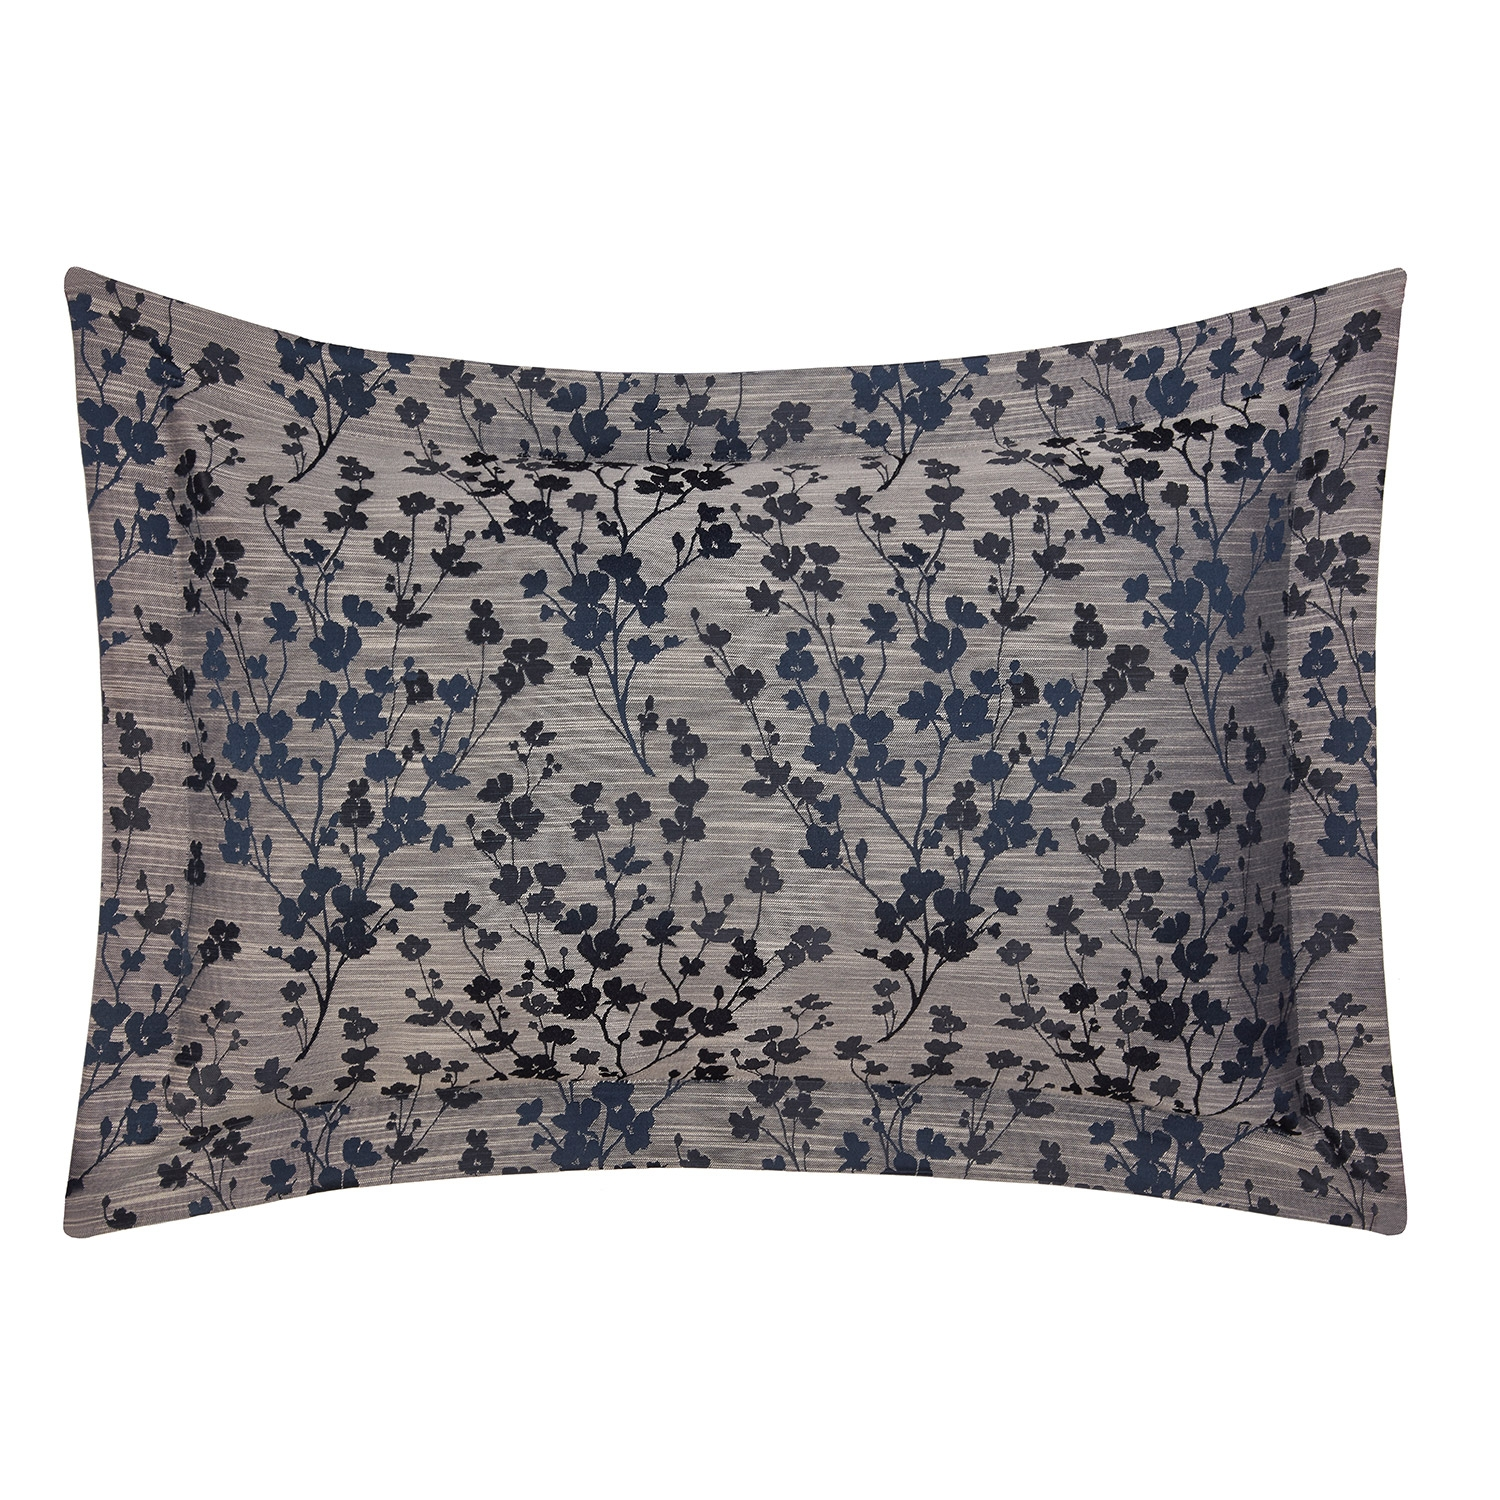 Blossom Navy Floral Jacquard Oxford Pillowcases (Pair)